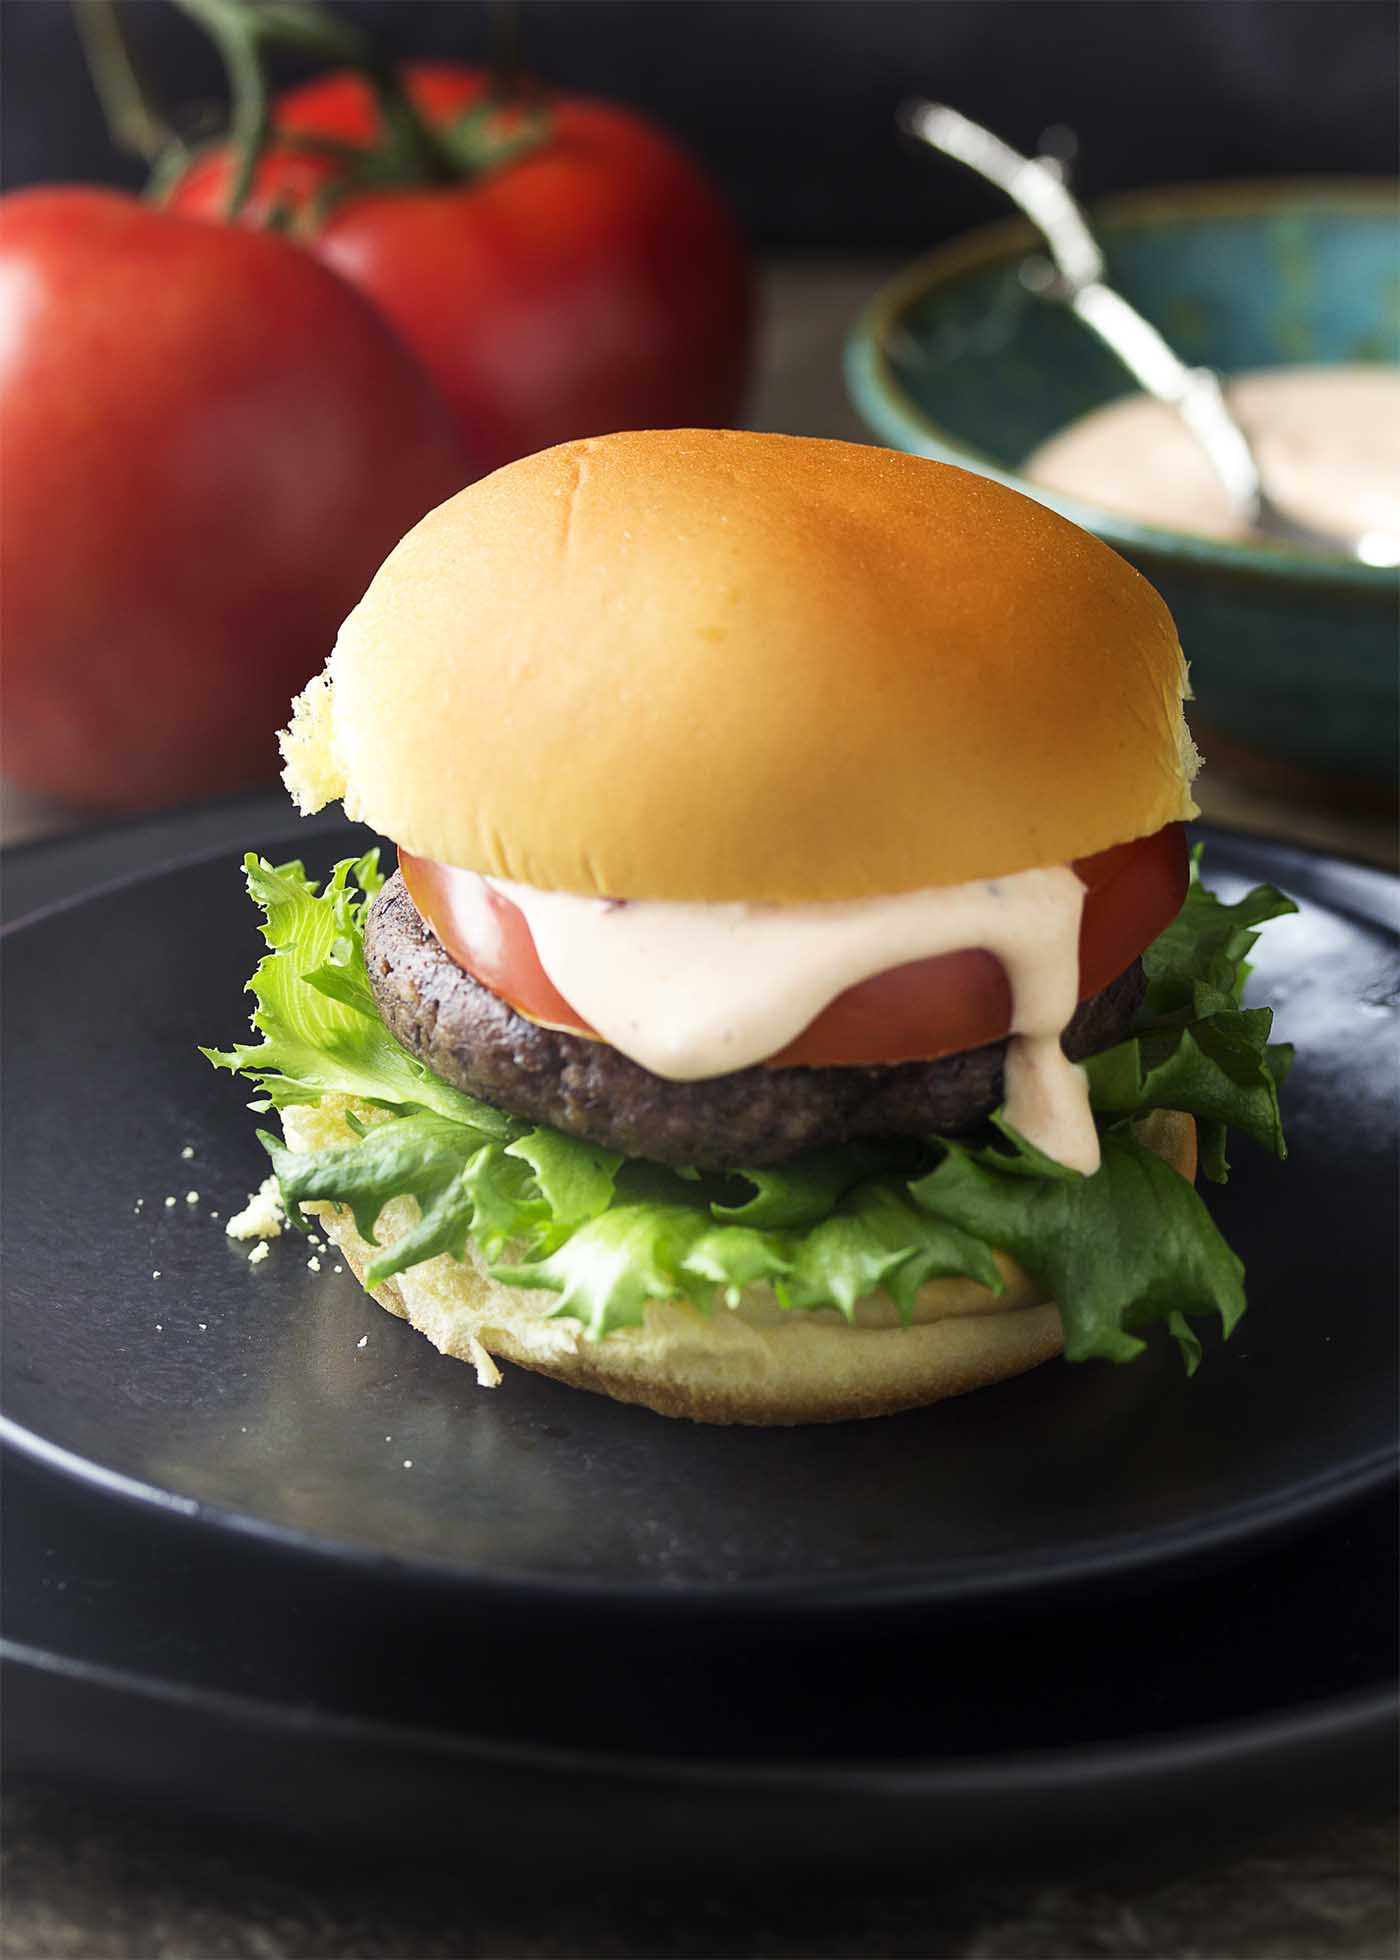 Black bean burger with bun and condiments on a black plate.